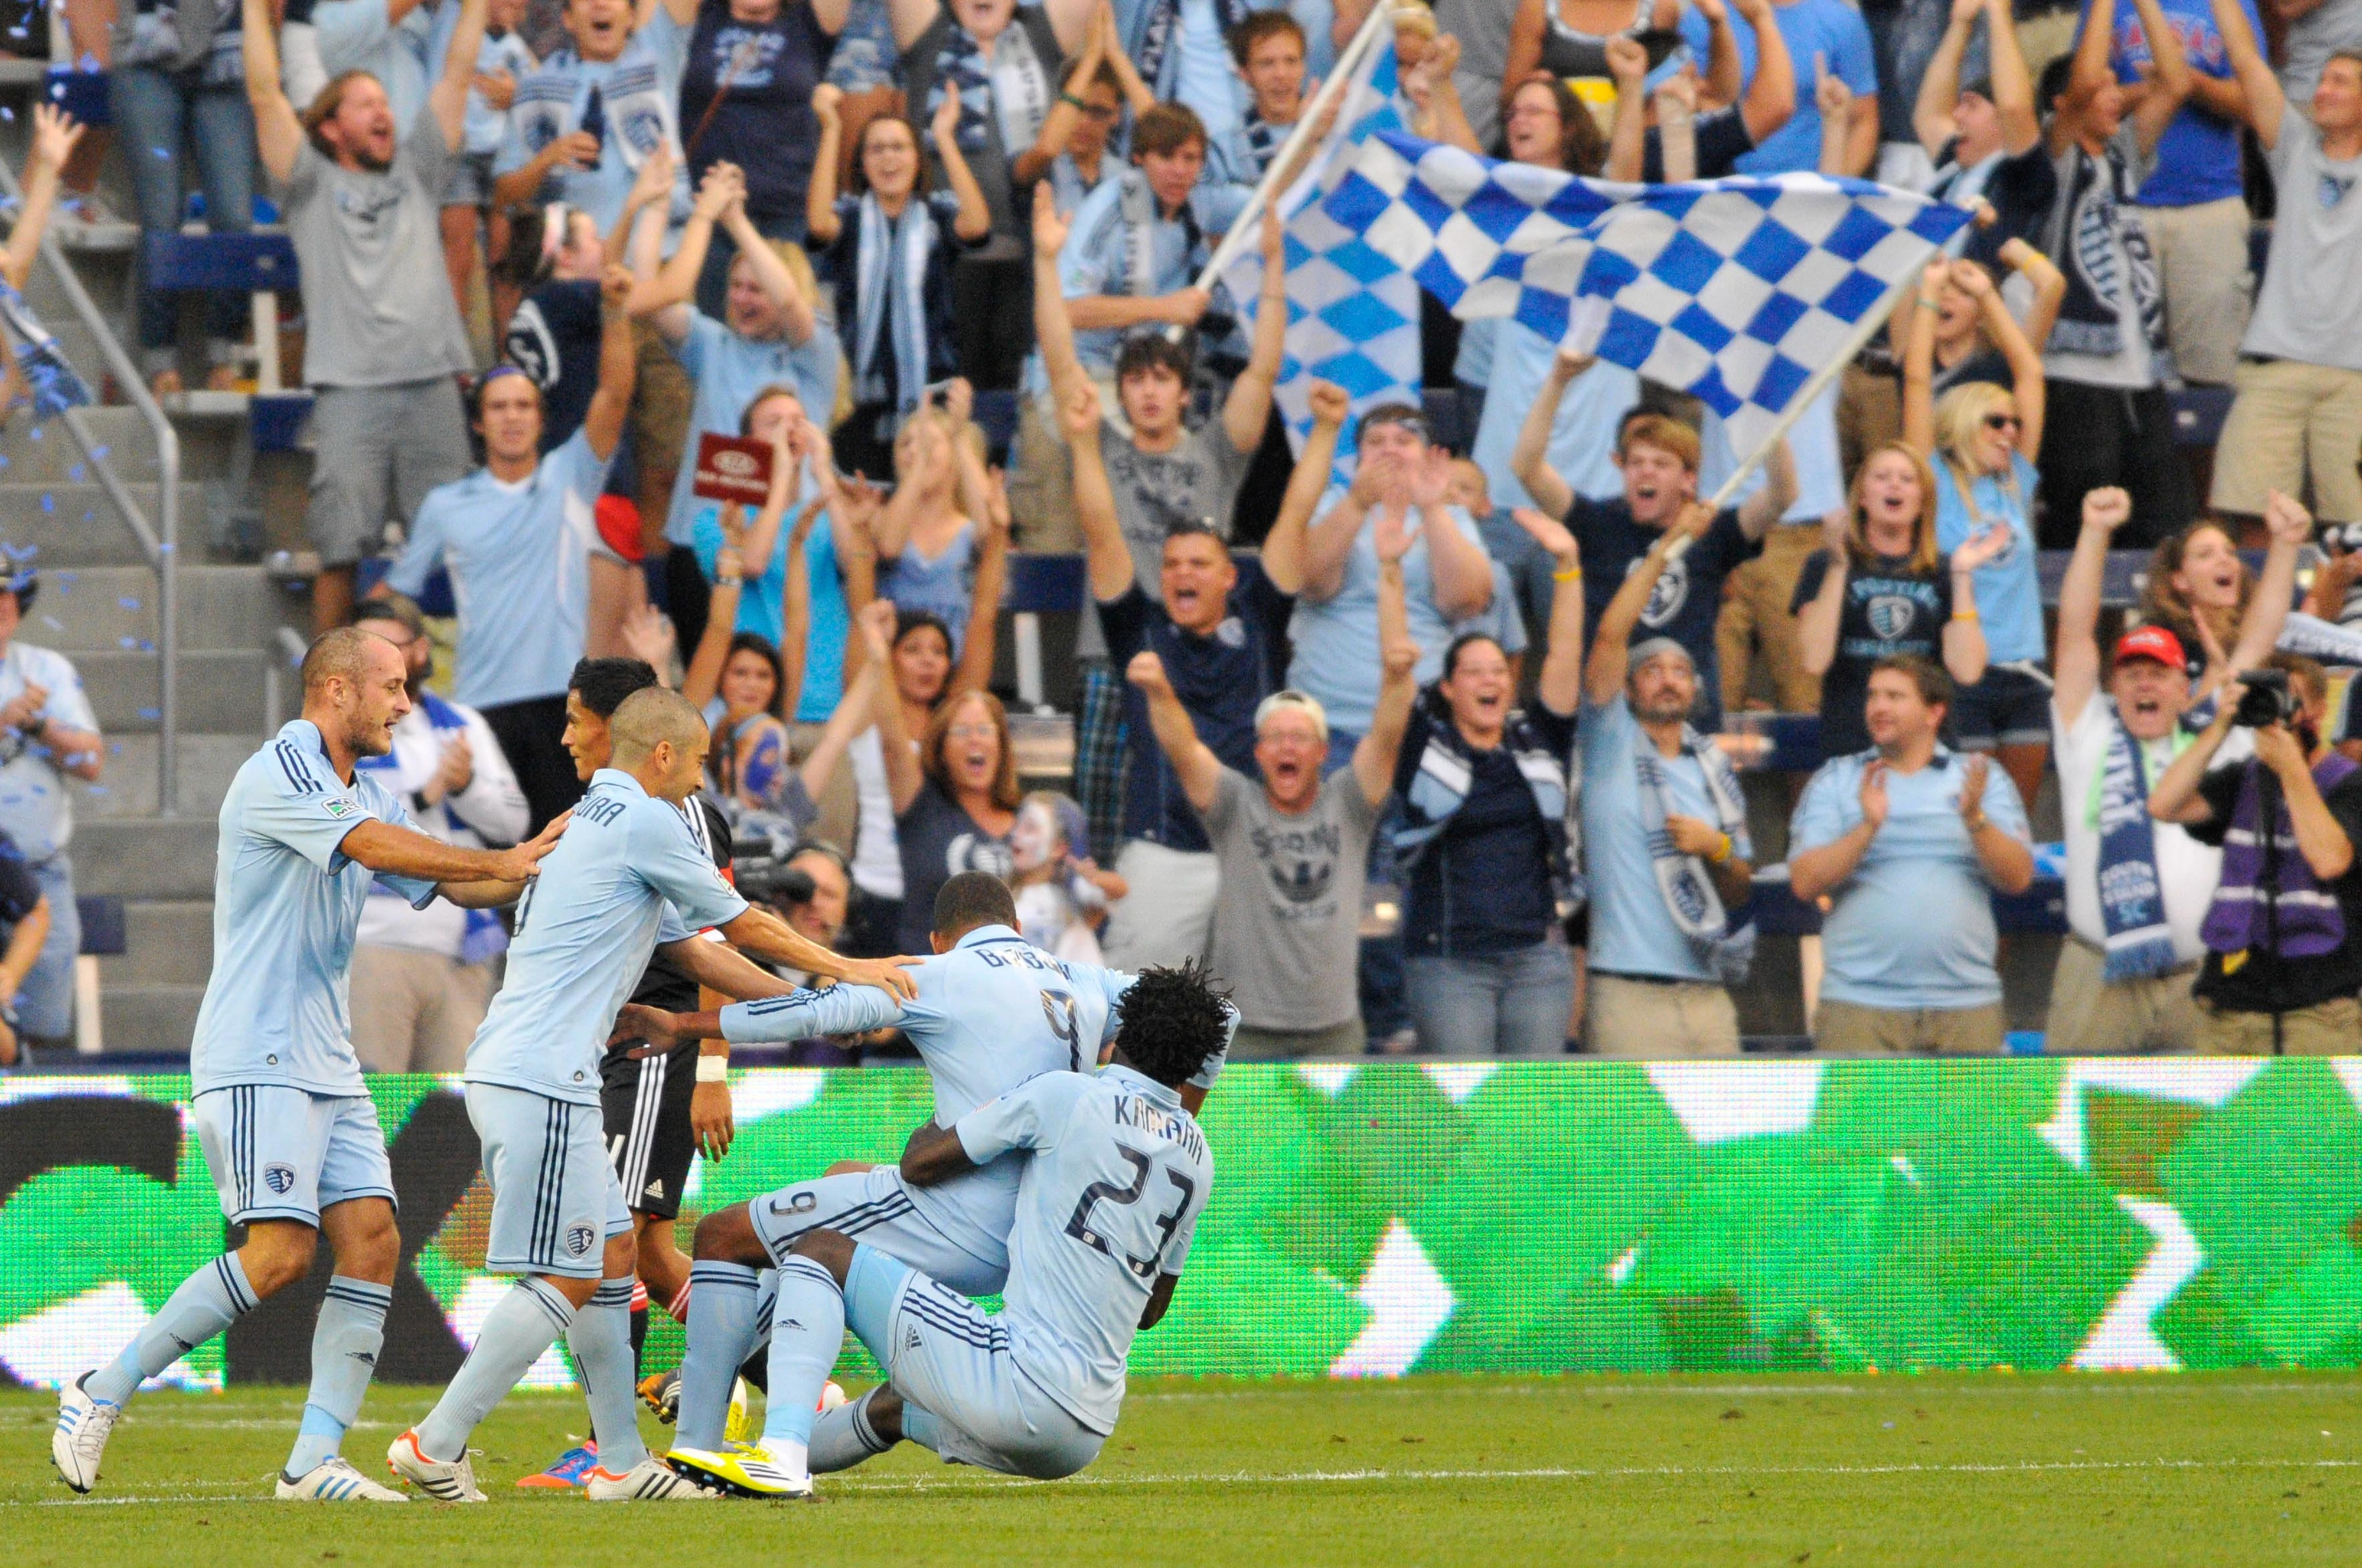 United was no match for the 4-3-3 tactics of Sporting Kansas City tonight